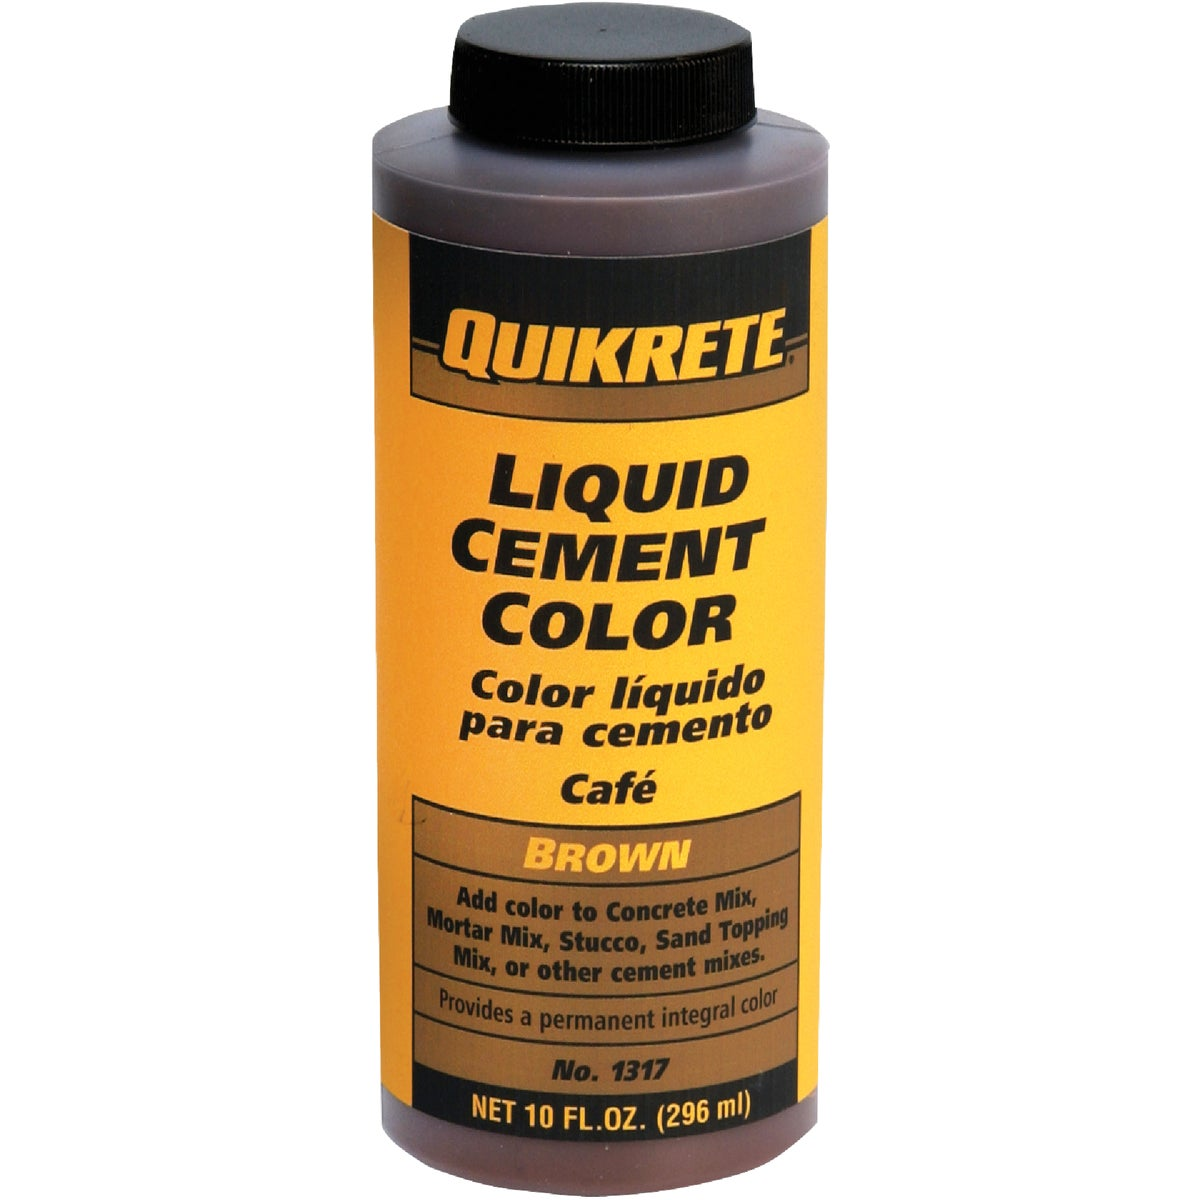 BRN LIQUID CEMENT COLOR - 1317-01 by Quikrete Co